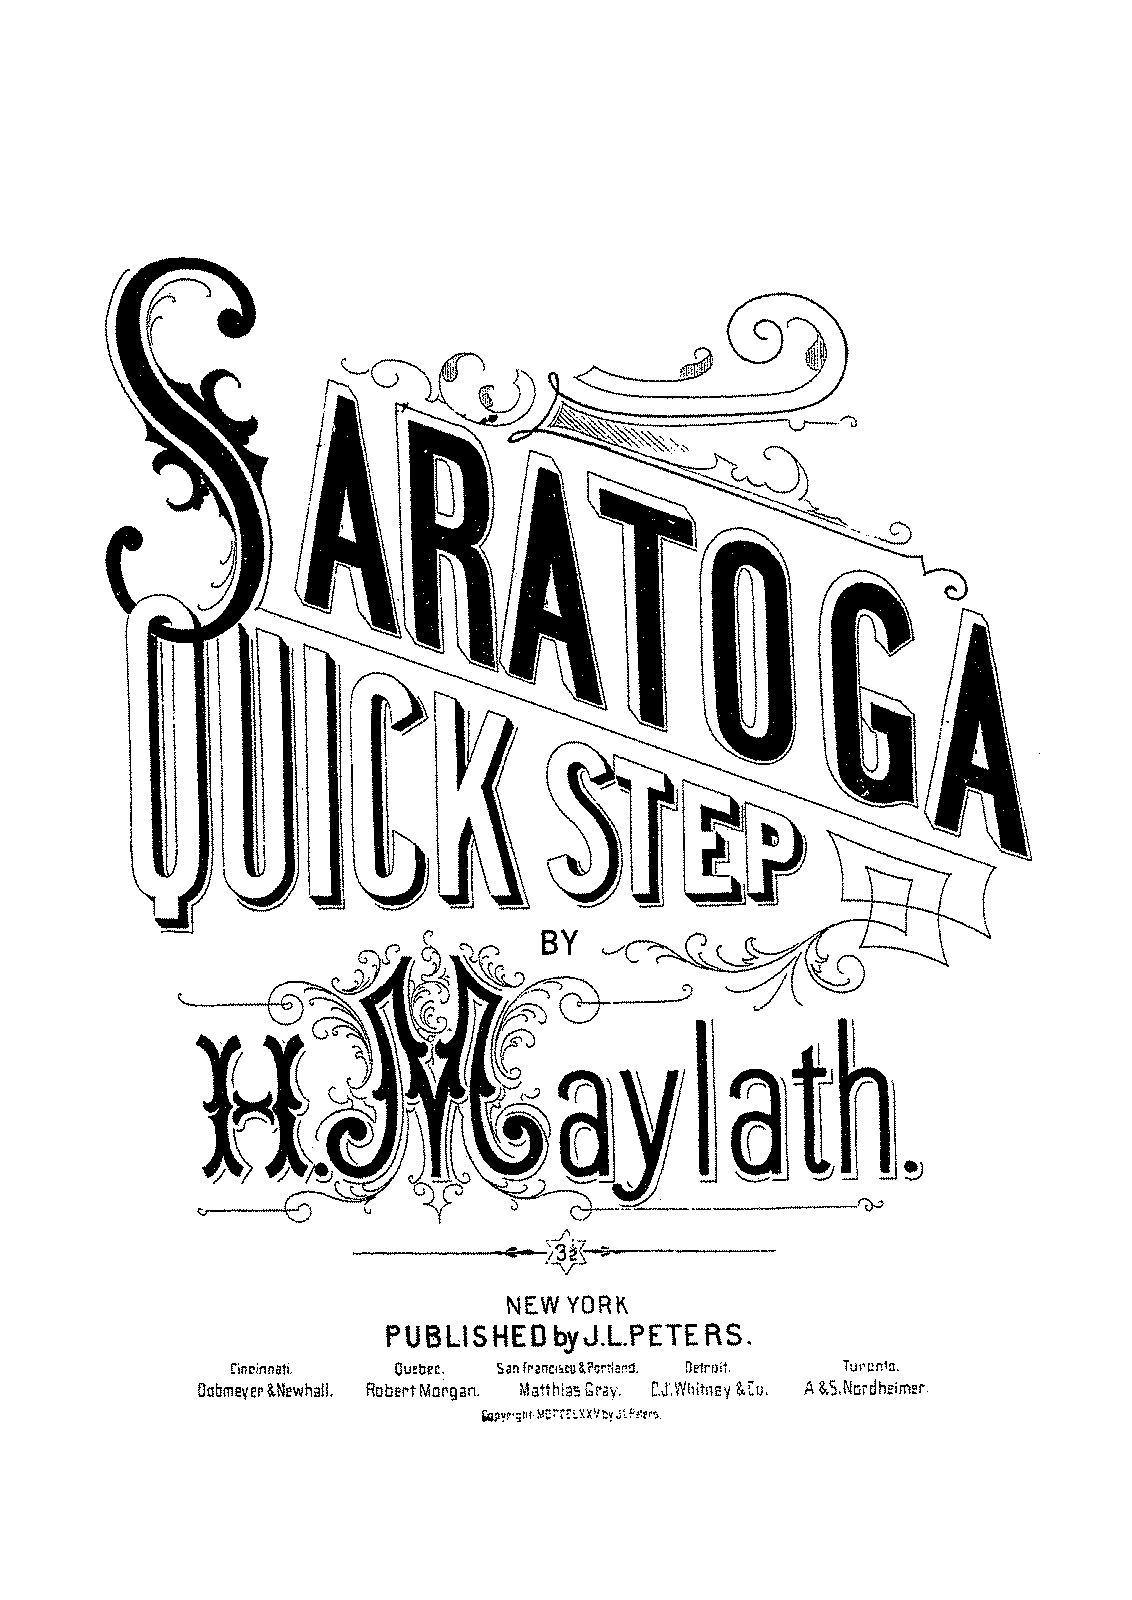 PMLP616562-Maylath - Saratoga Quick Step.pdf